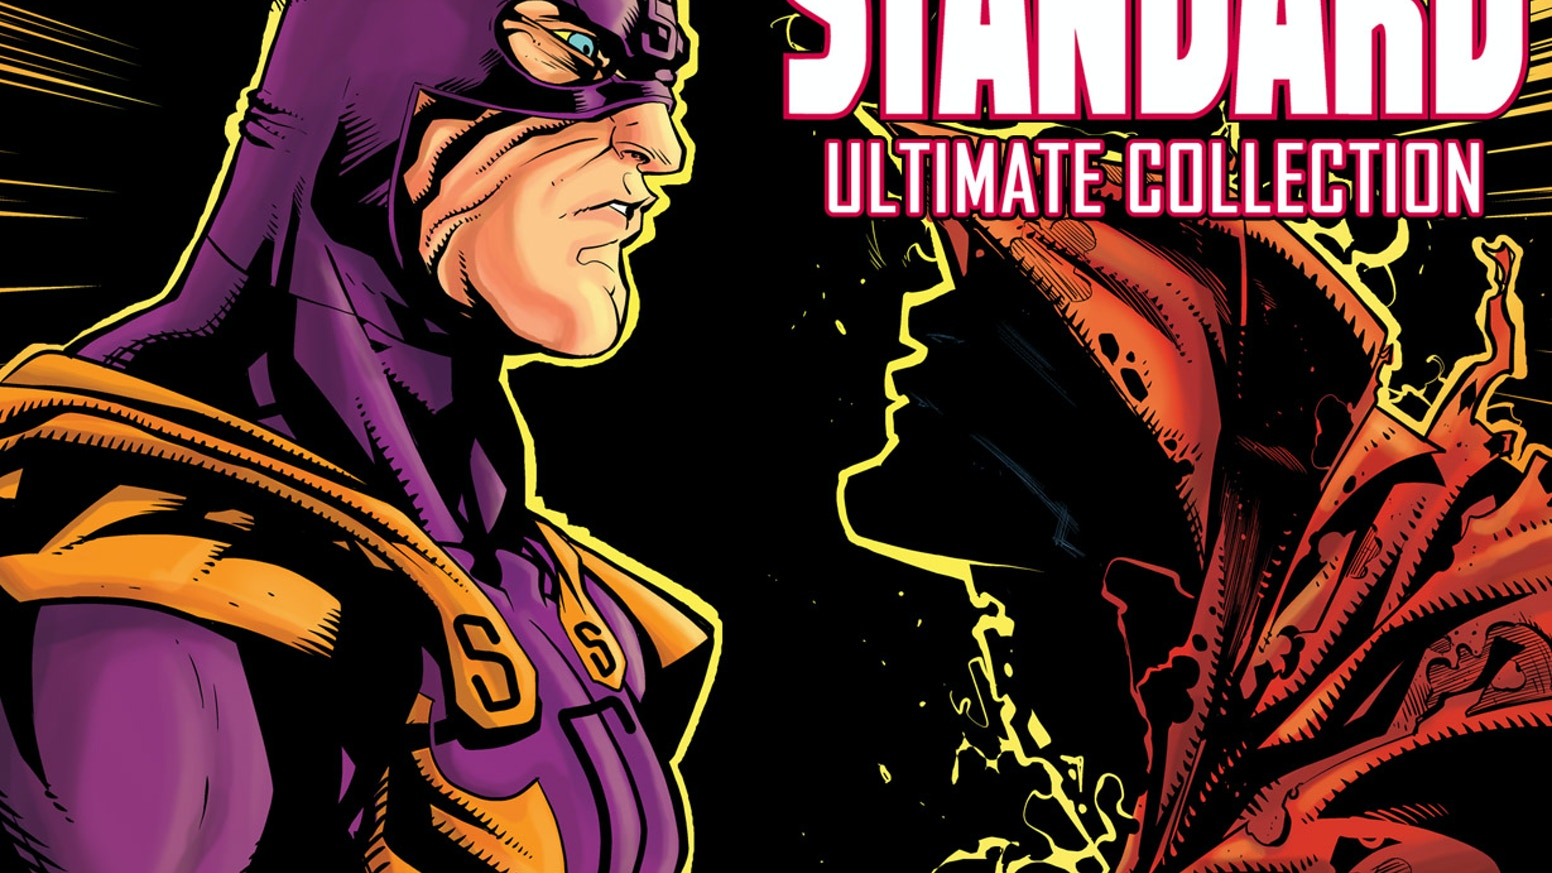 Two generations of heroes collide in the definitive 200+ page collection of the award-winning series.